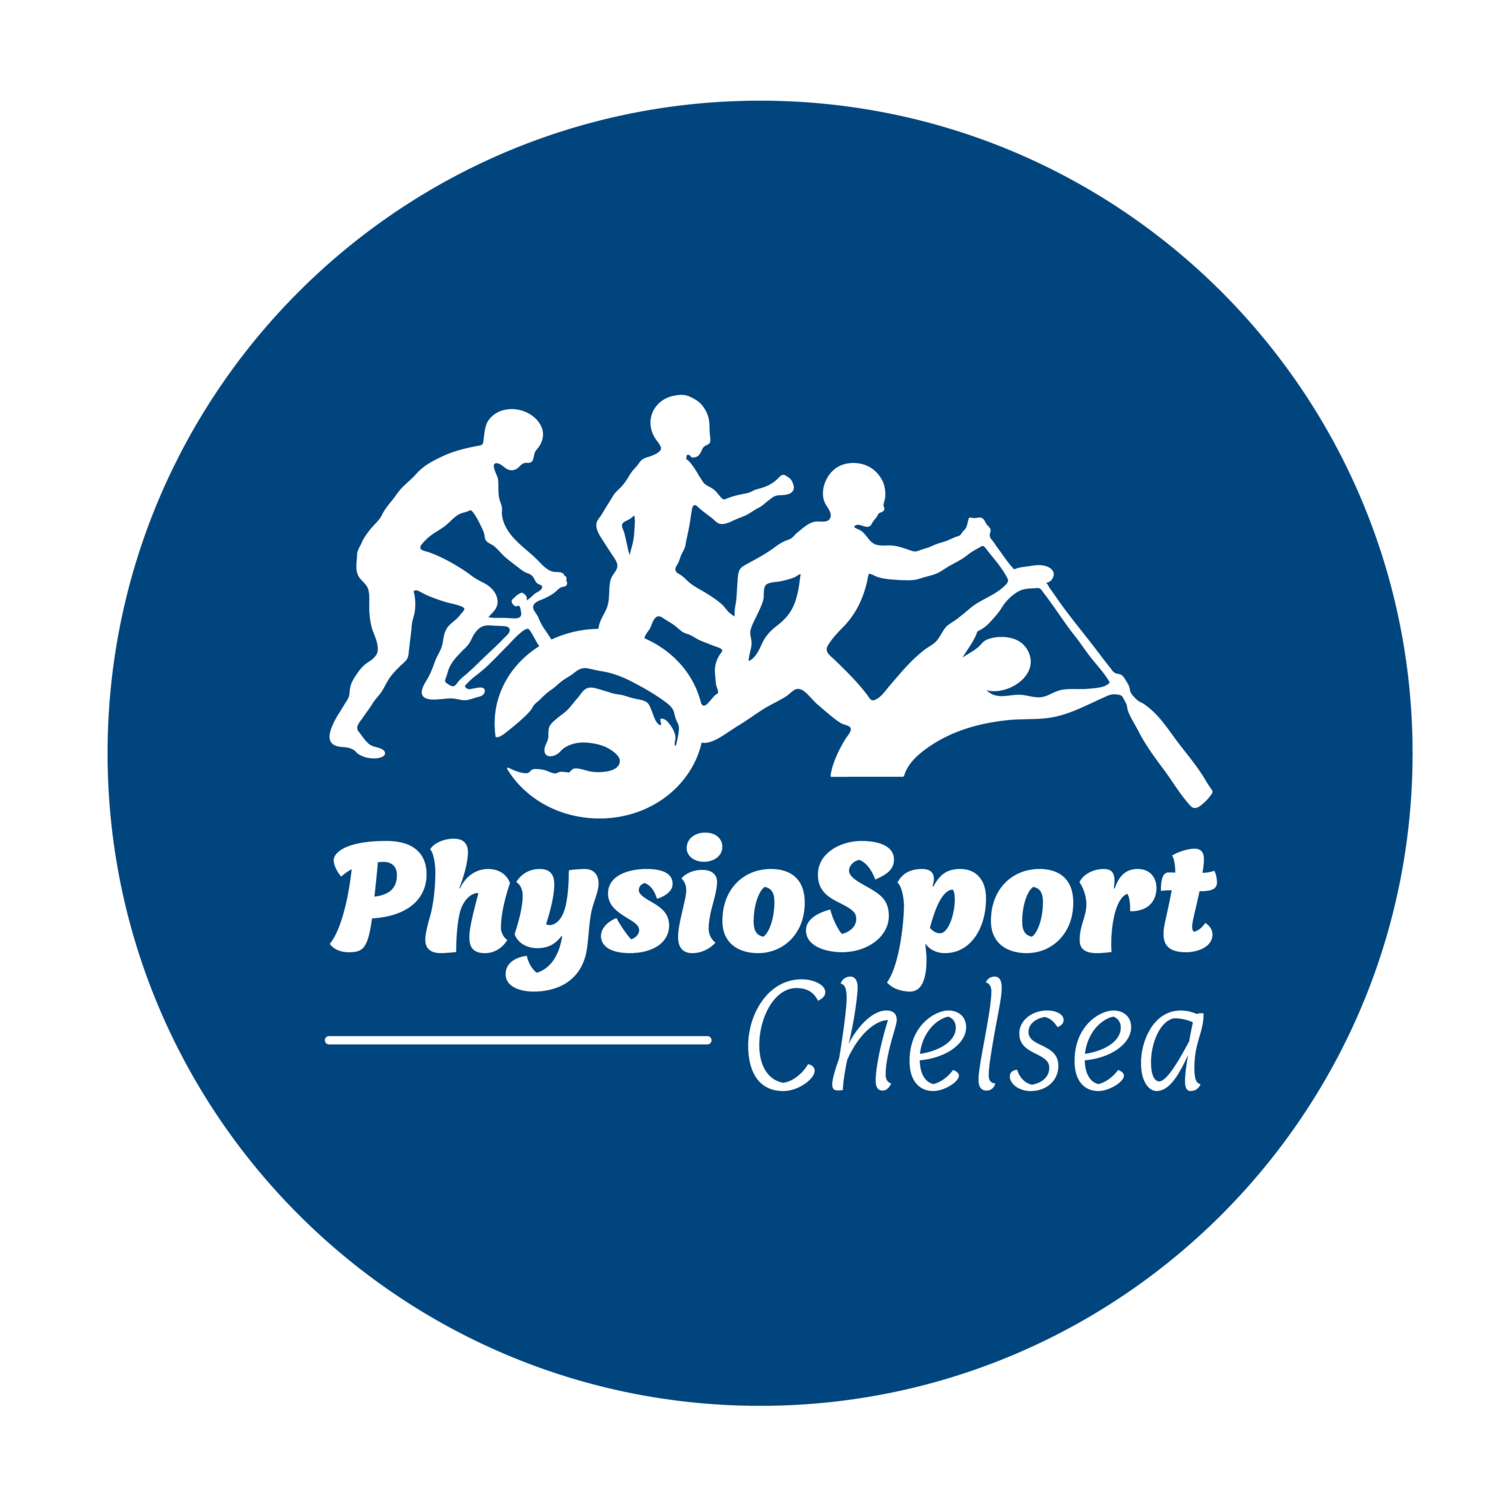 PhysioSport Chelsea | Chelsea, Quebec